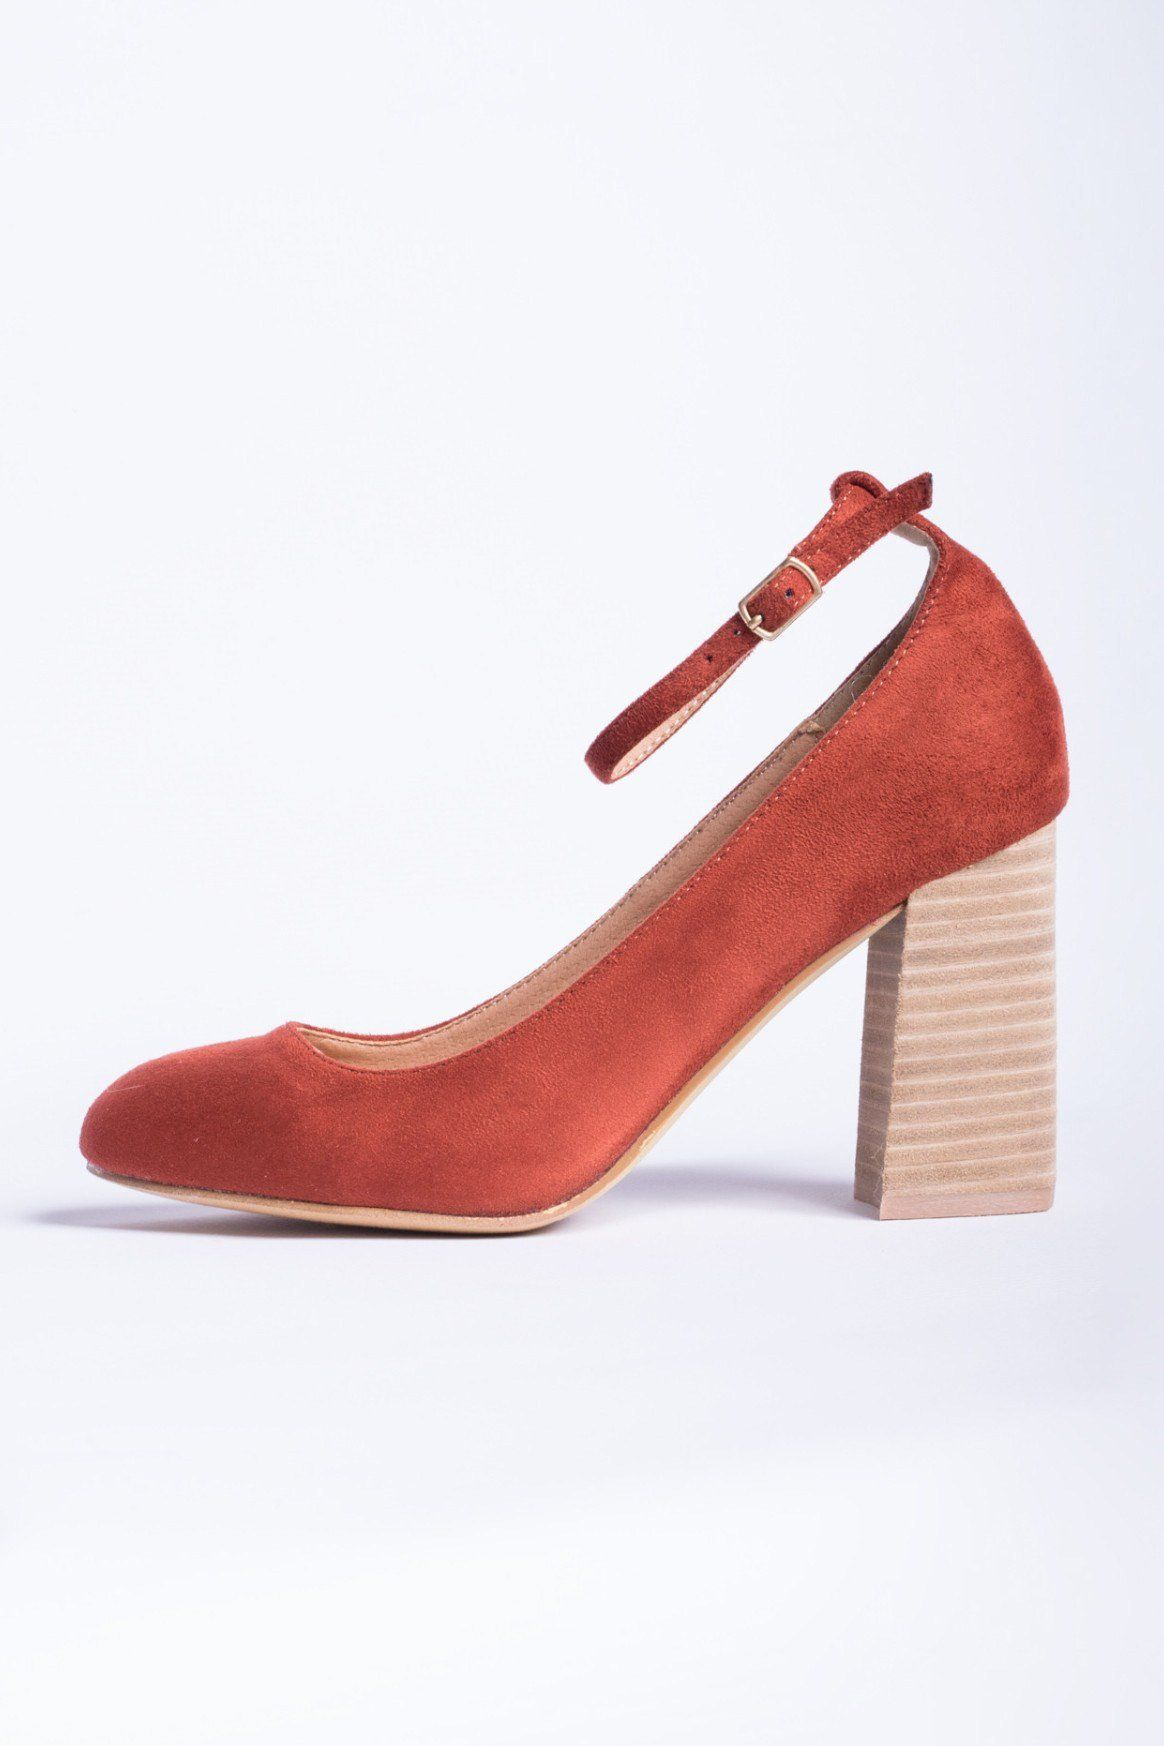 How to suede red wear shoes recommendations dress in autumn in 2019